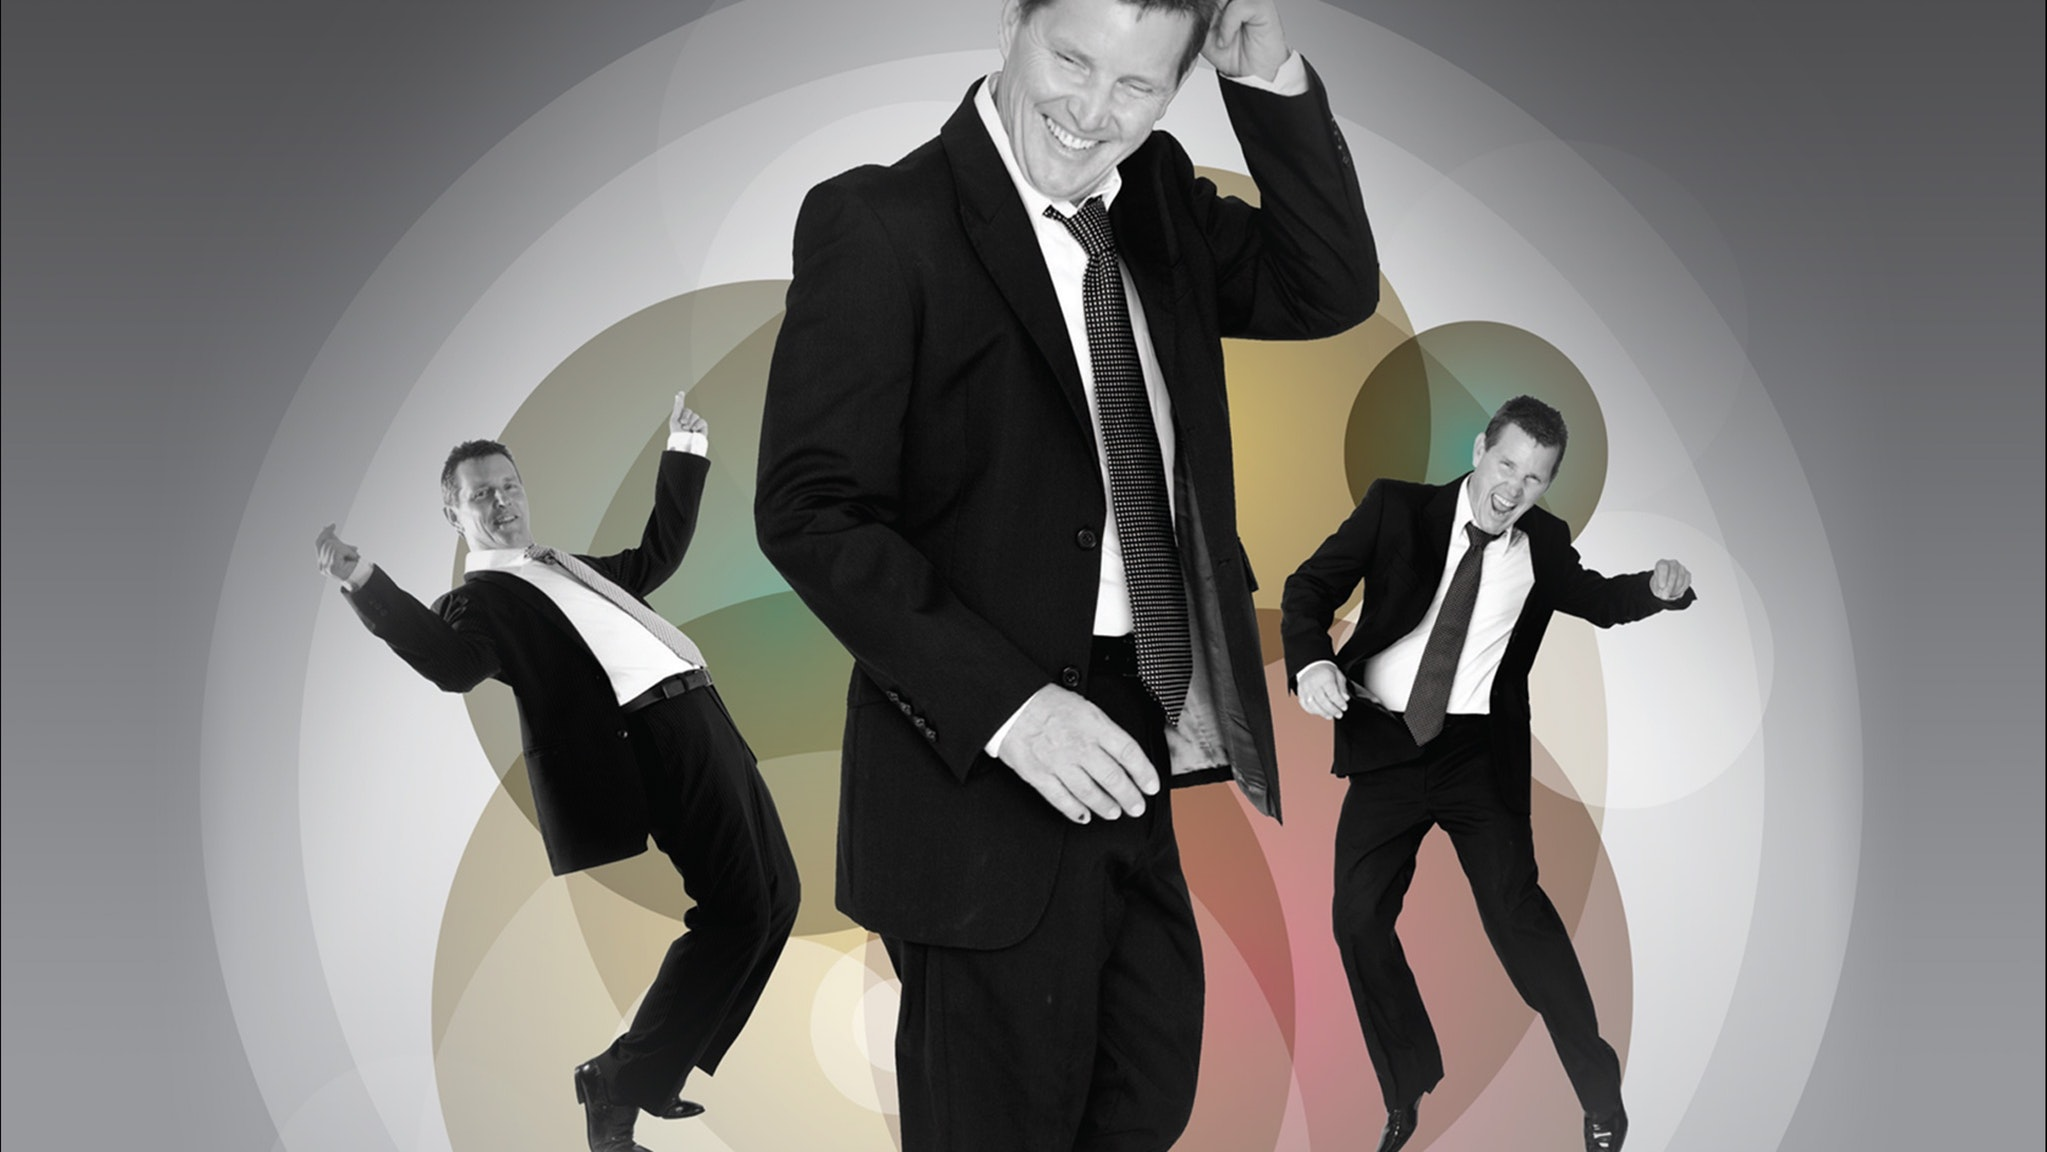 Tom Burlinson will be performing Bird's for the first Matinee show